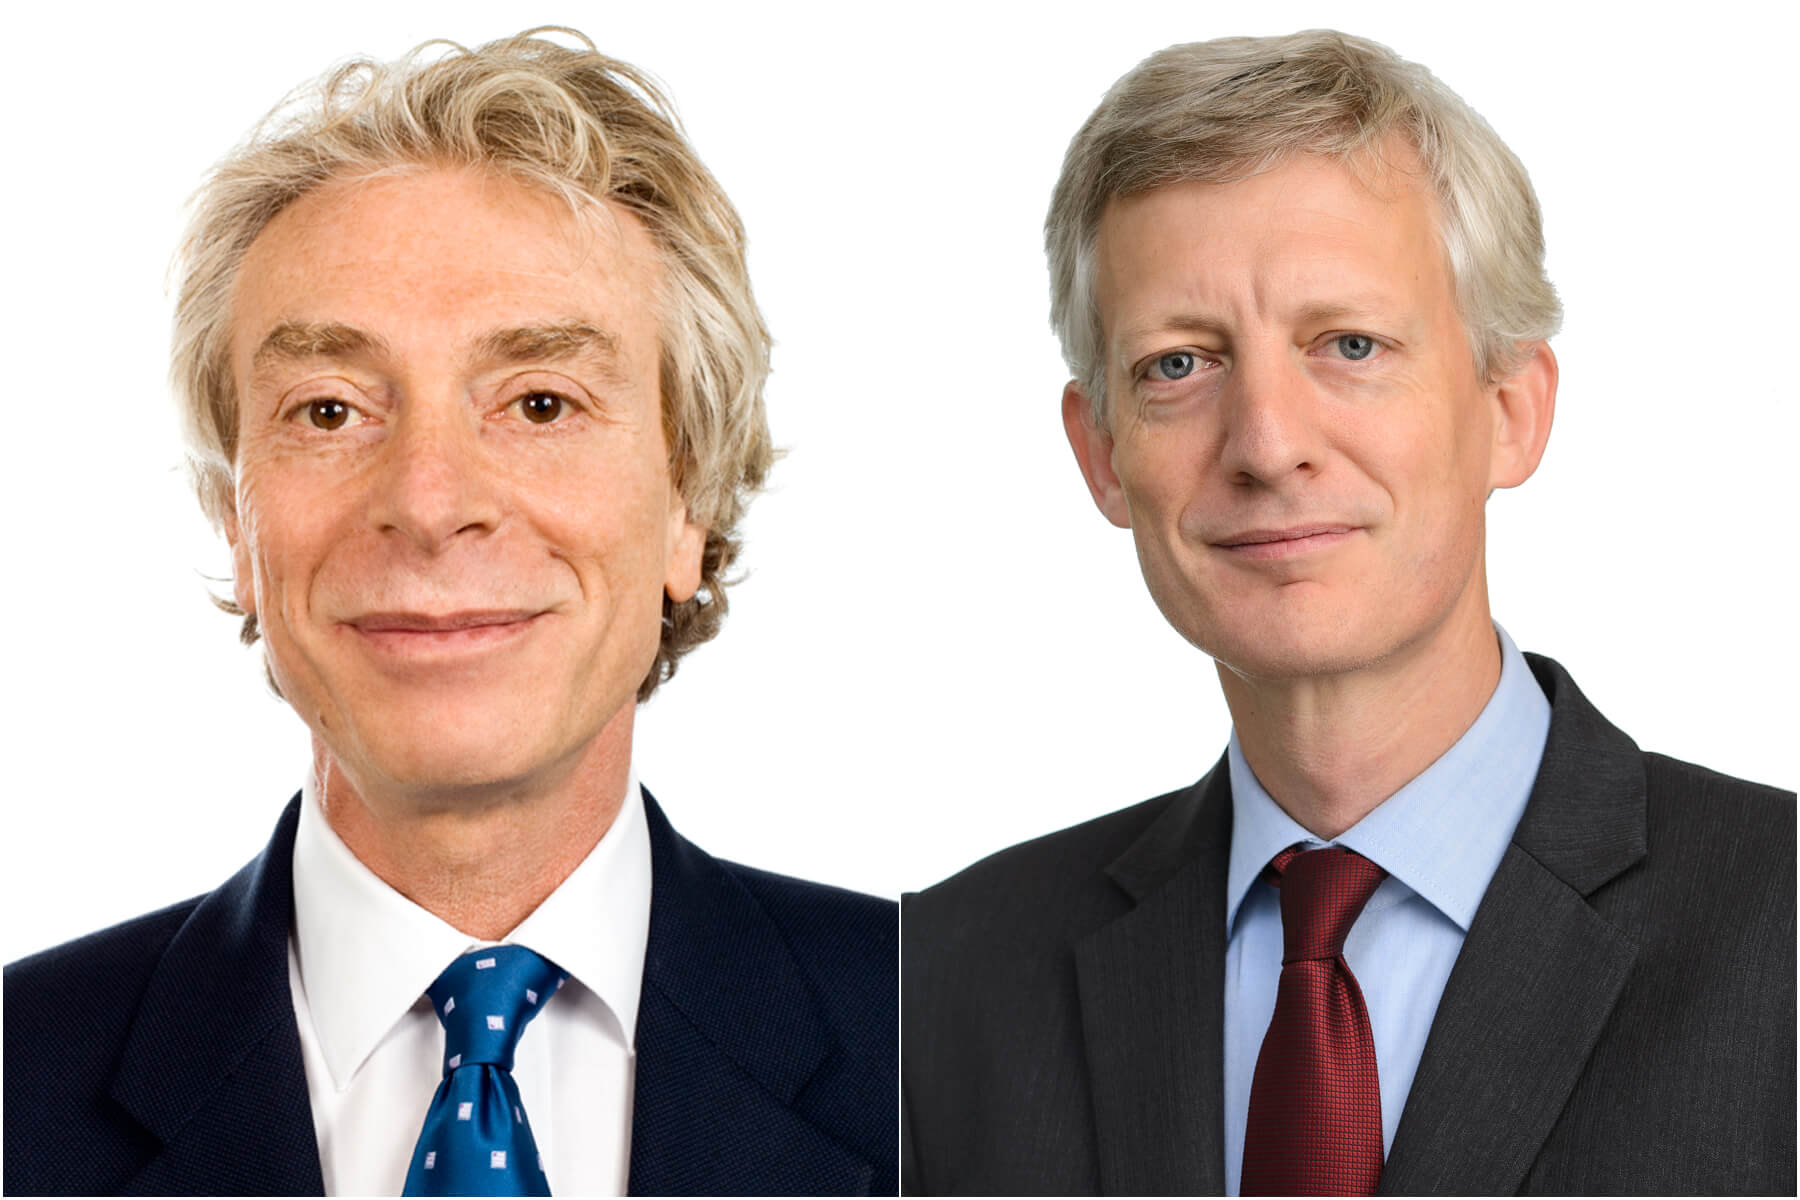 ARC Capital Partners Limited v Brit UW Limited & Anr.